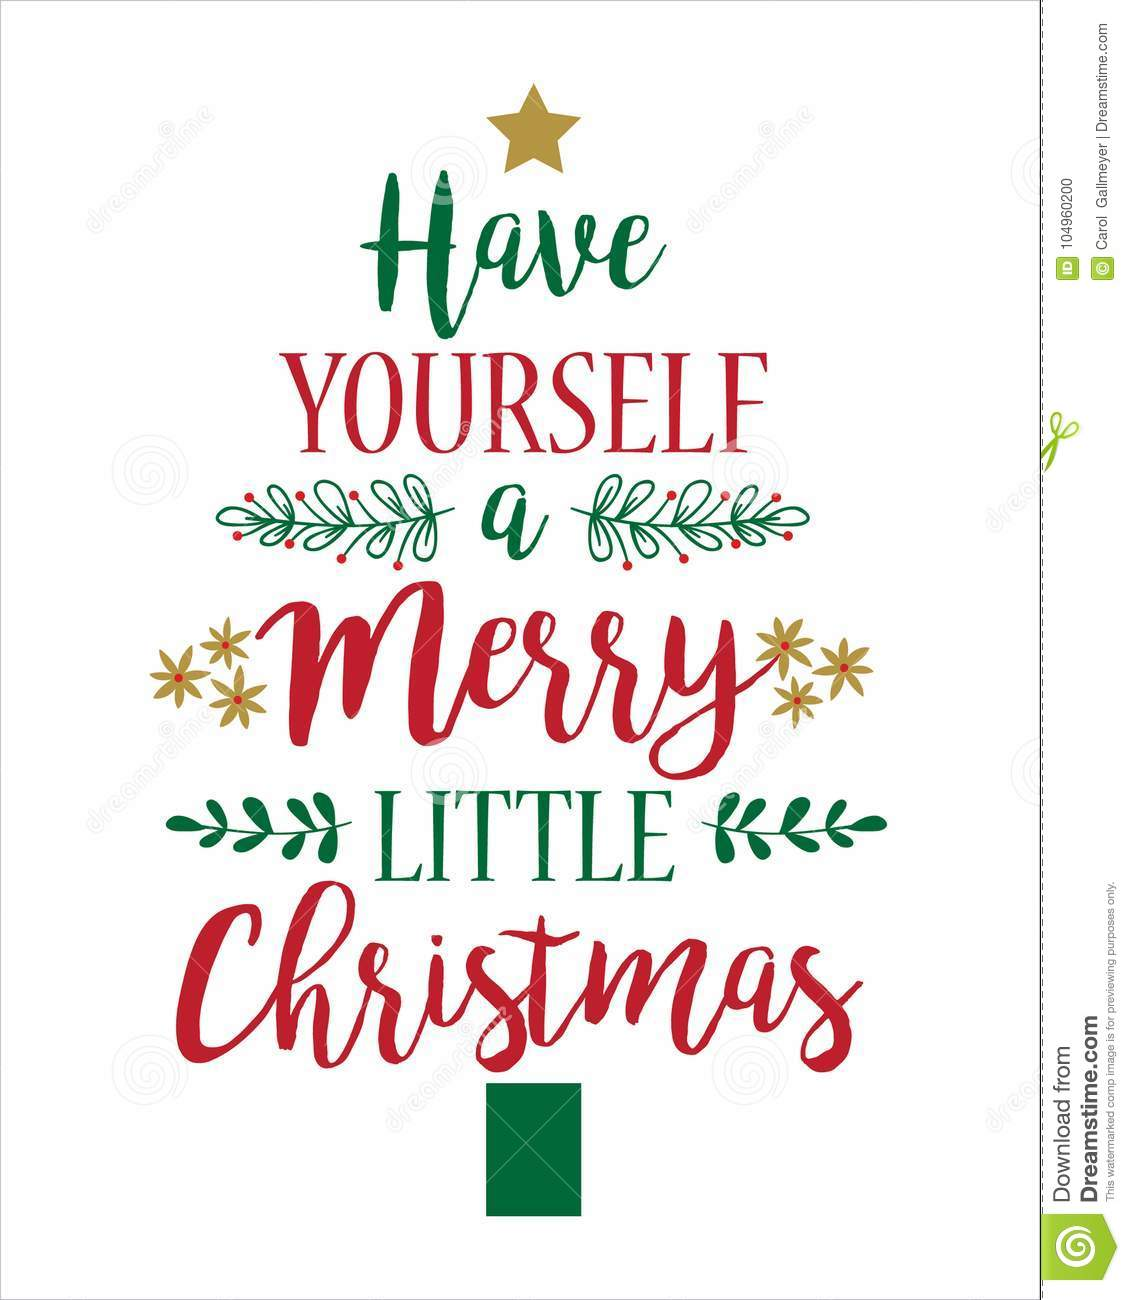 Have Yourself A Merry Little Christmas Sign.Christmas Greeting Card Template Have Yourself A Merry